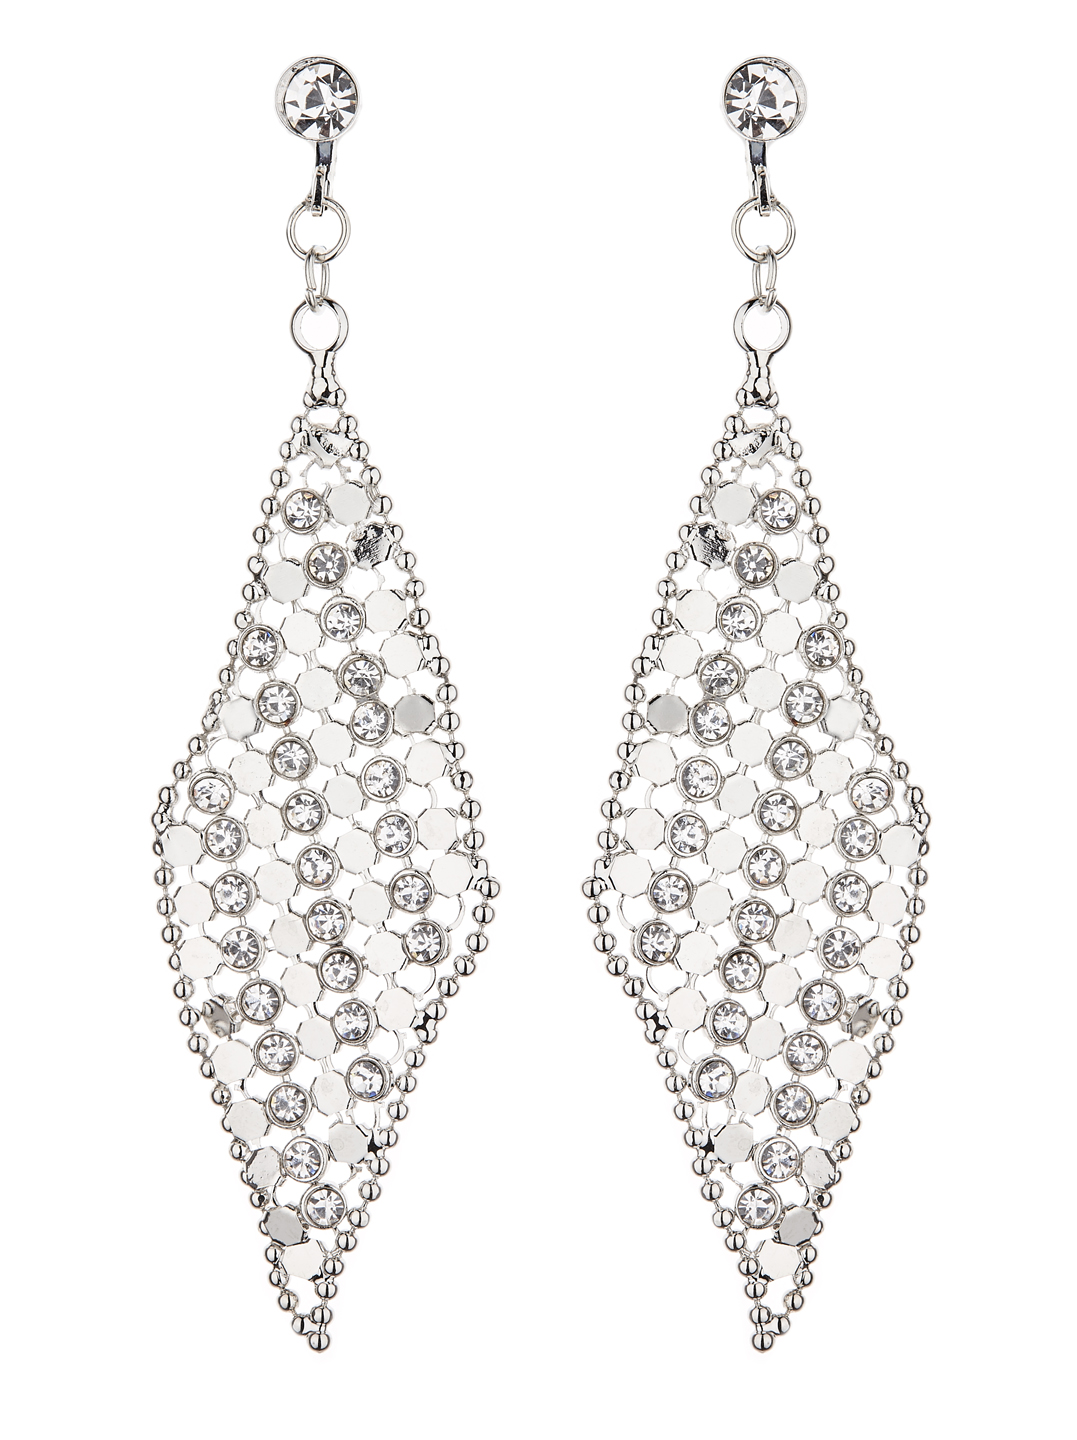 Clip On Earrings - Daisy S - silver drop earring with clear crystals